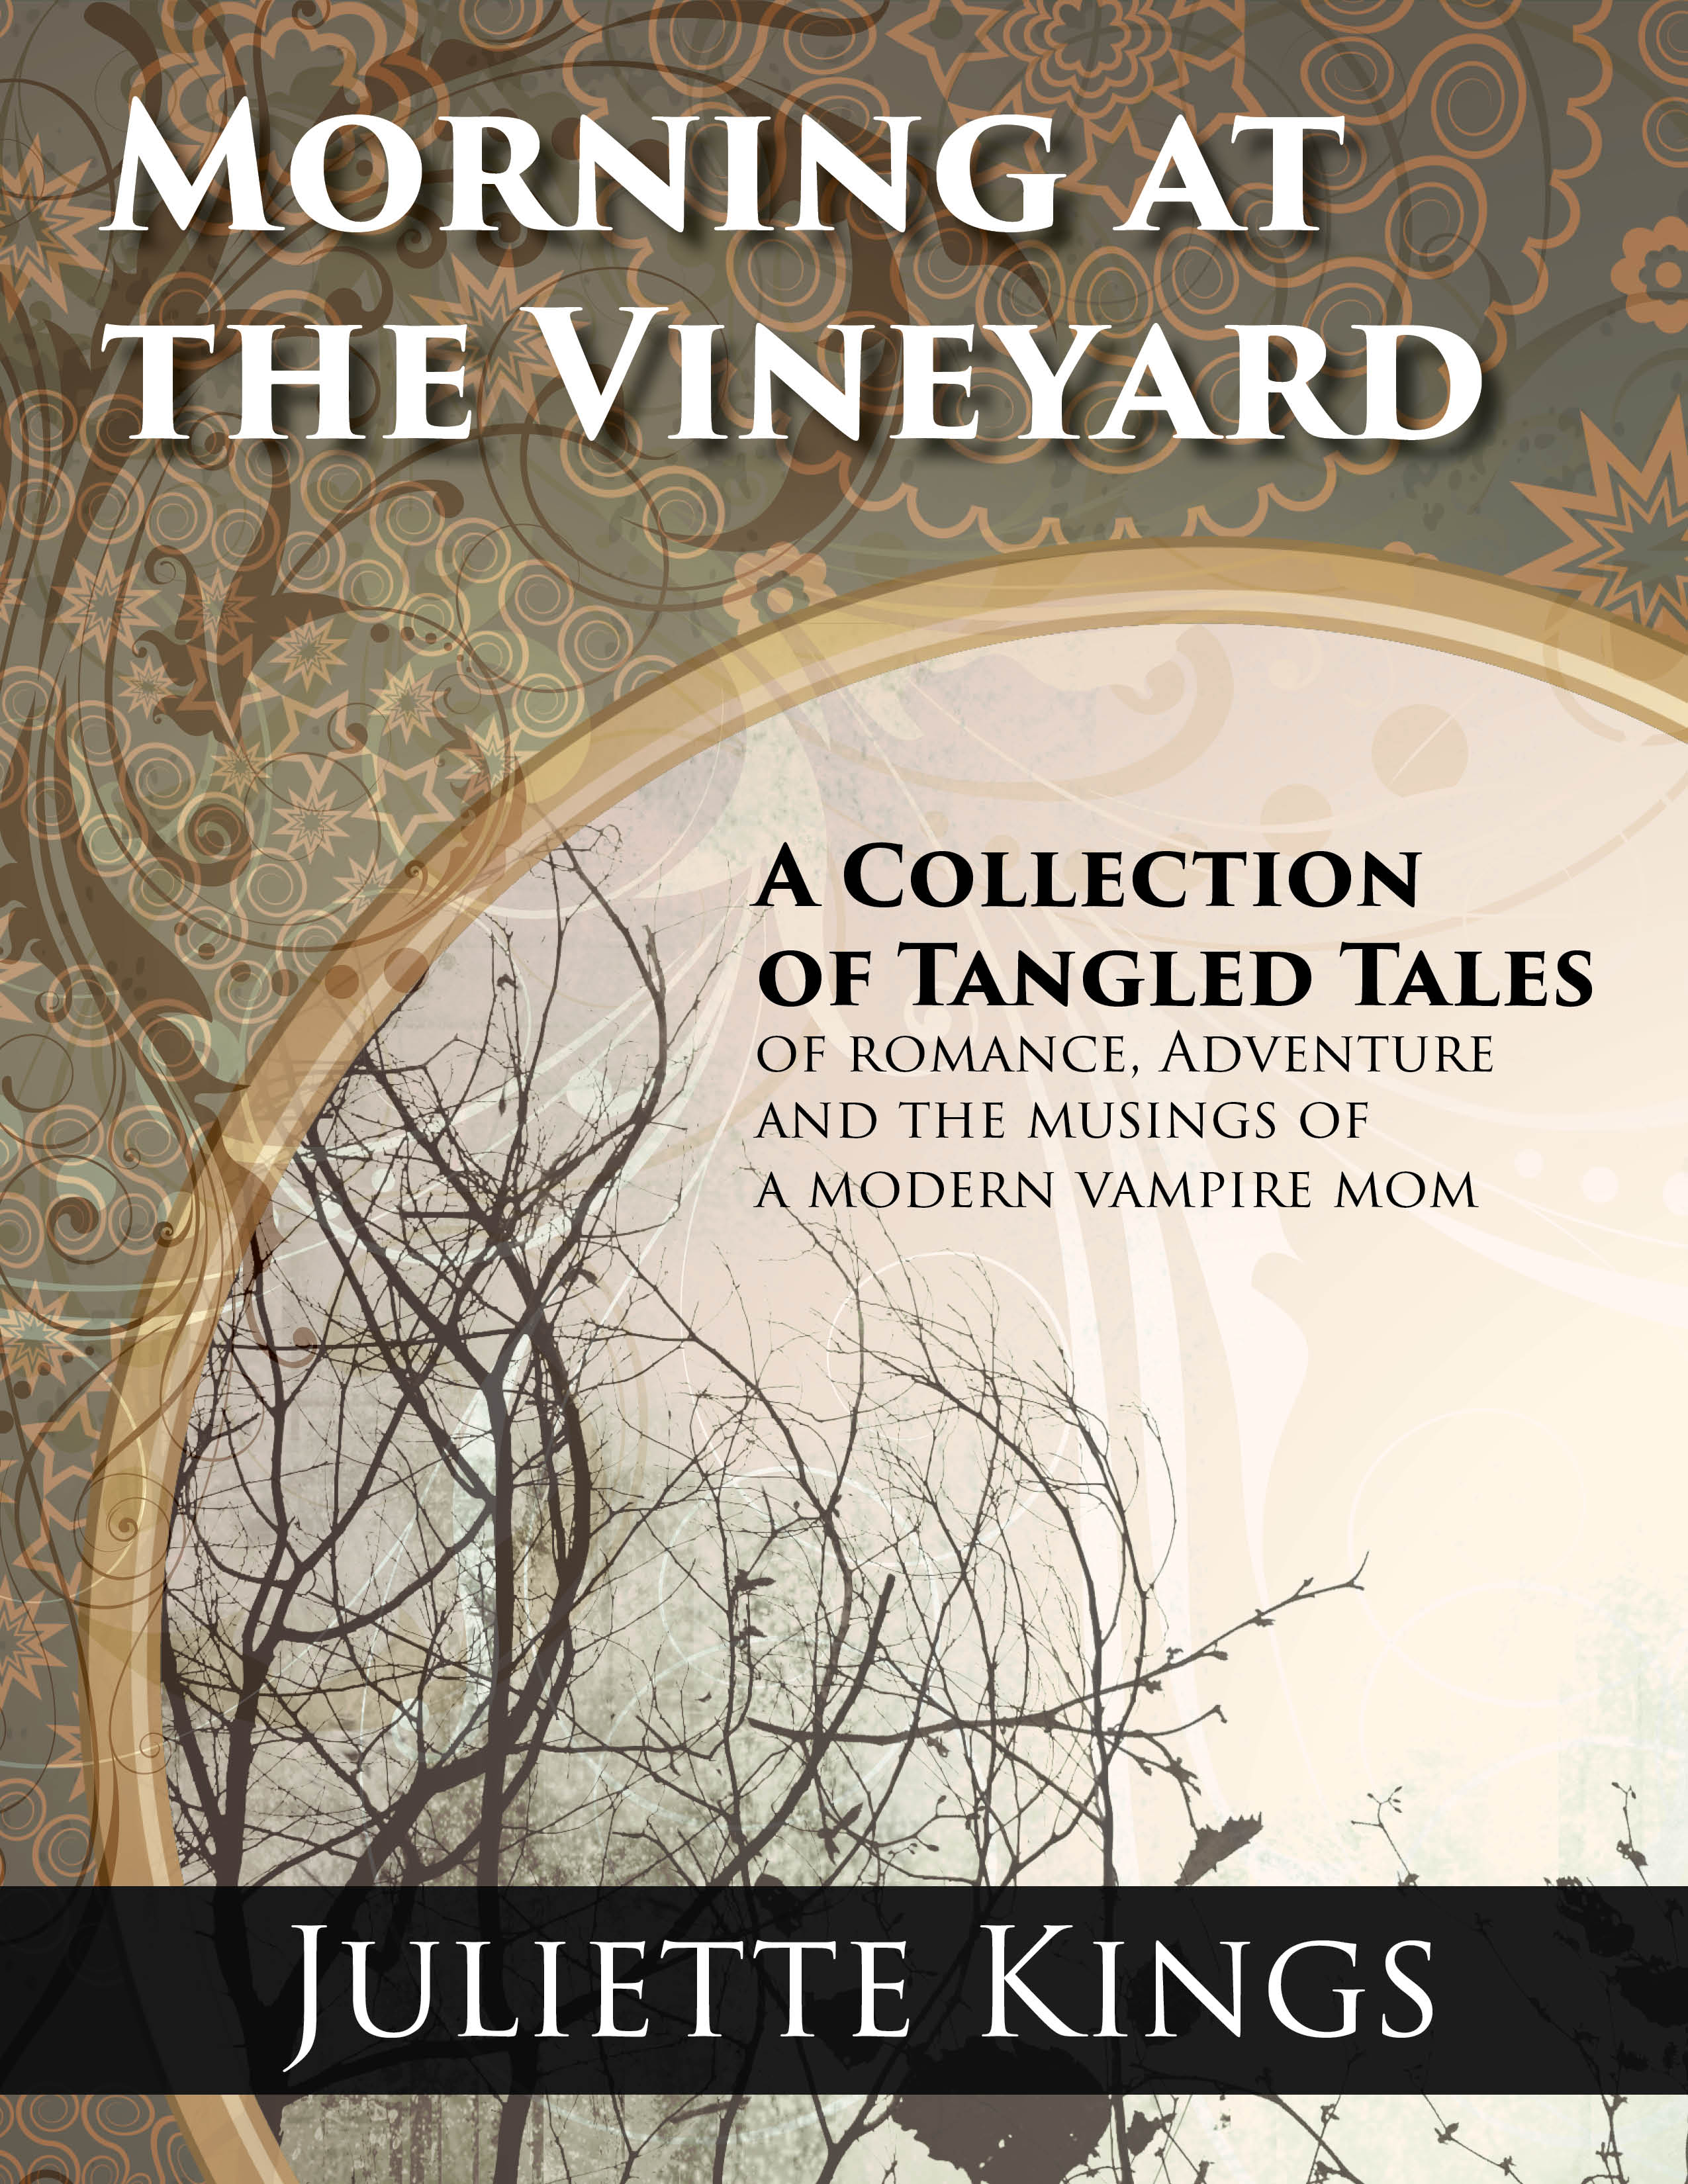 Morning At The Vineyard Now Available On Amazon (and Tell The Folks At